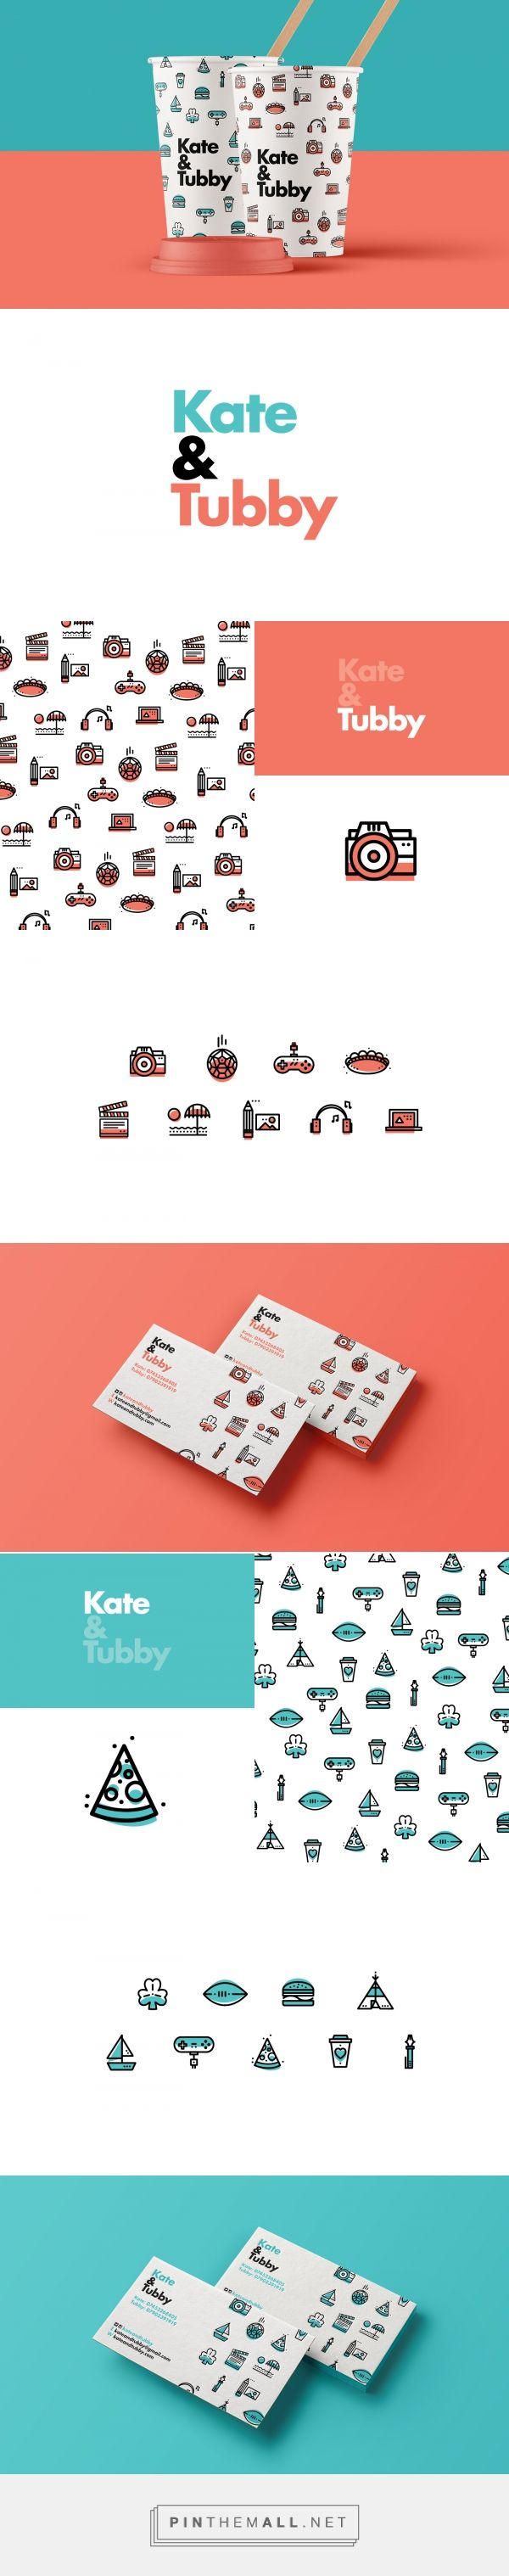 Kate & Tubby on Behance